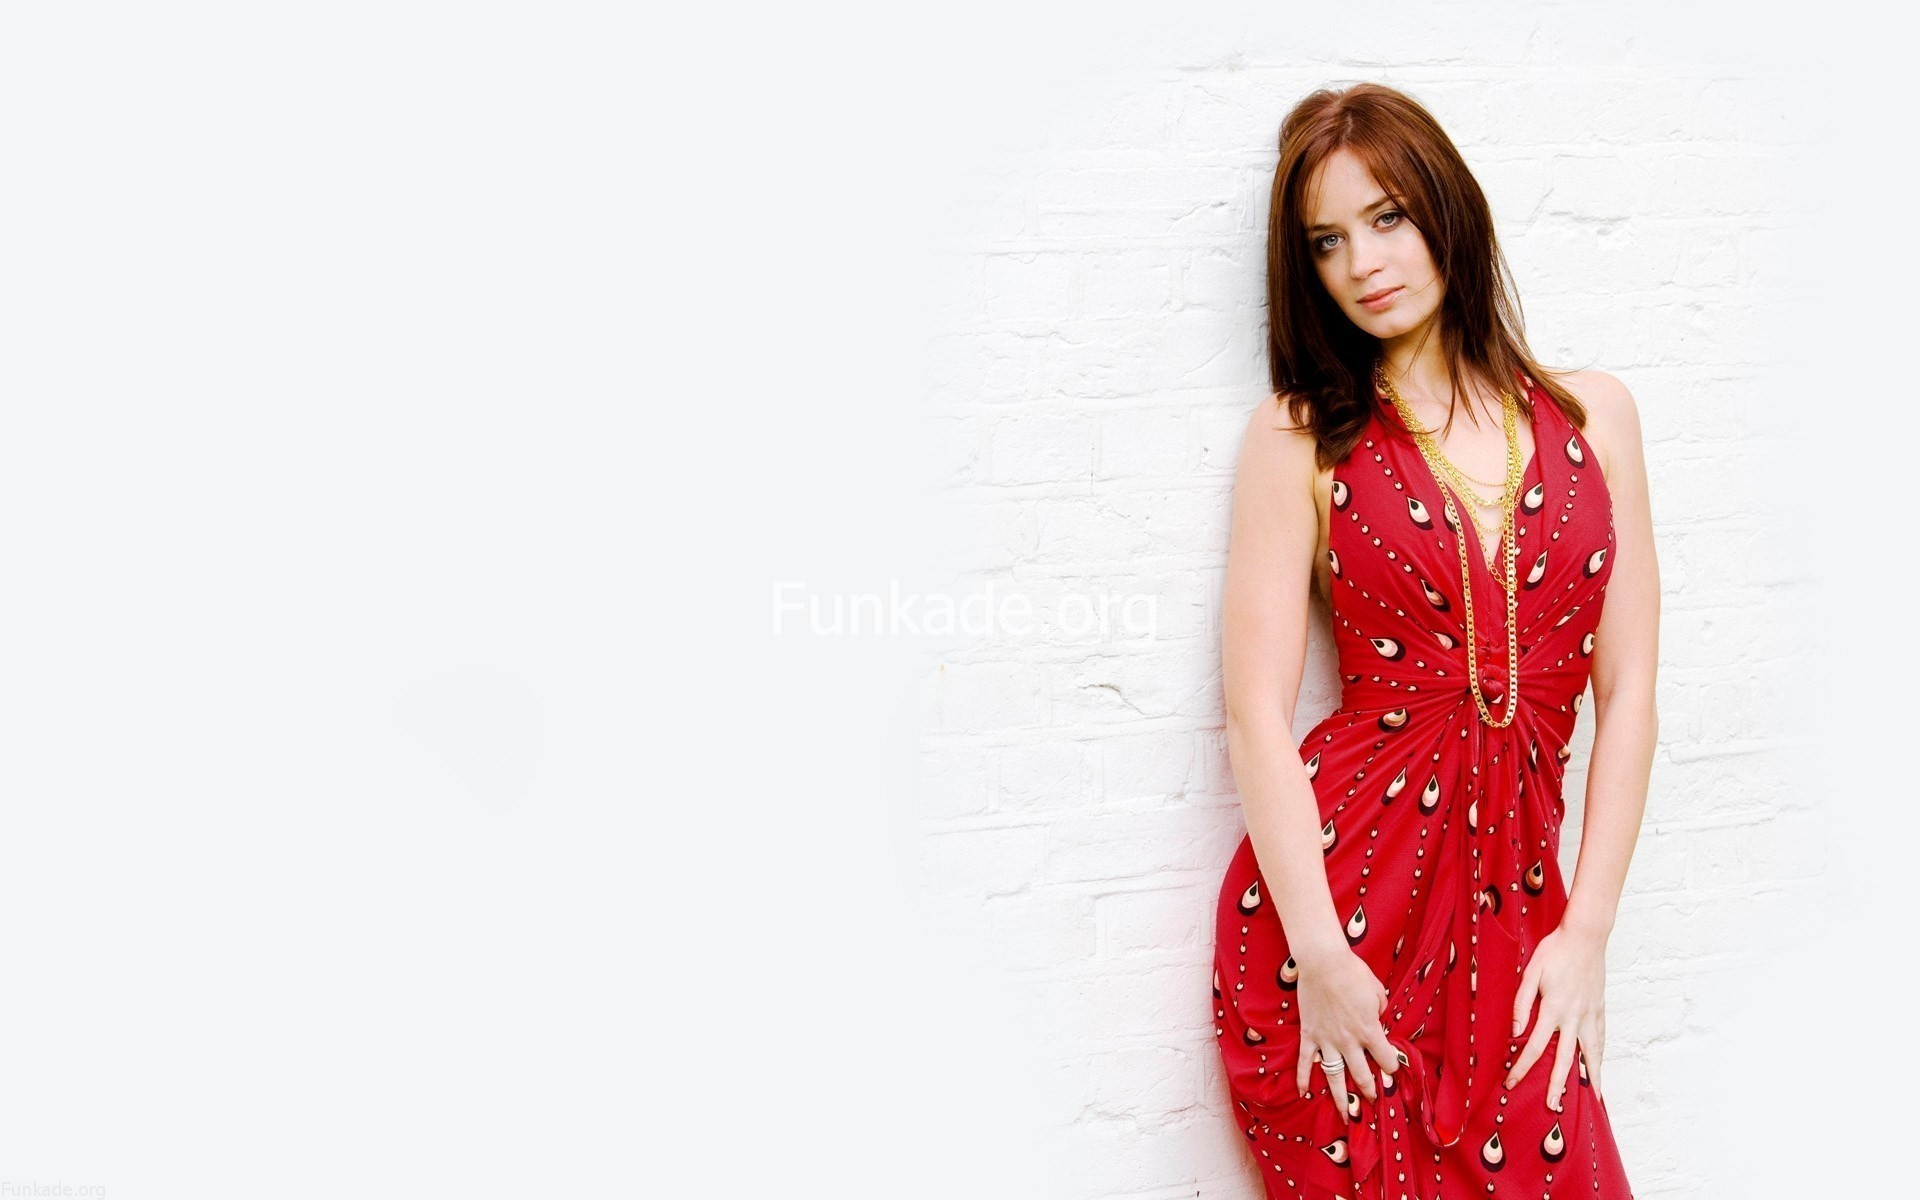 emily blunt red dress wallpaper 66110